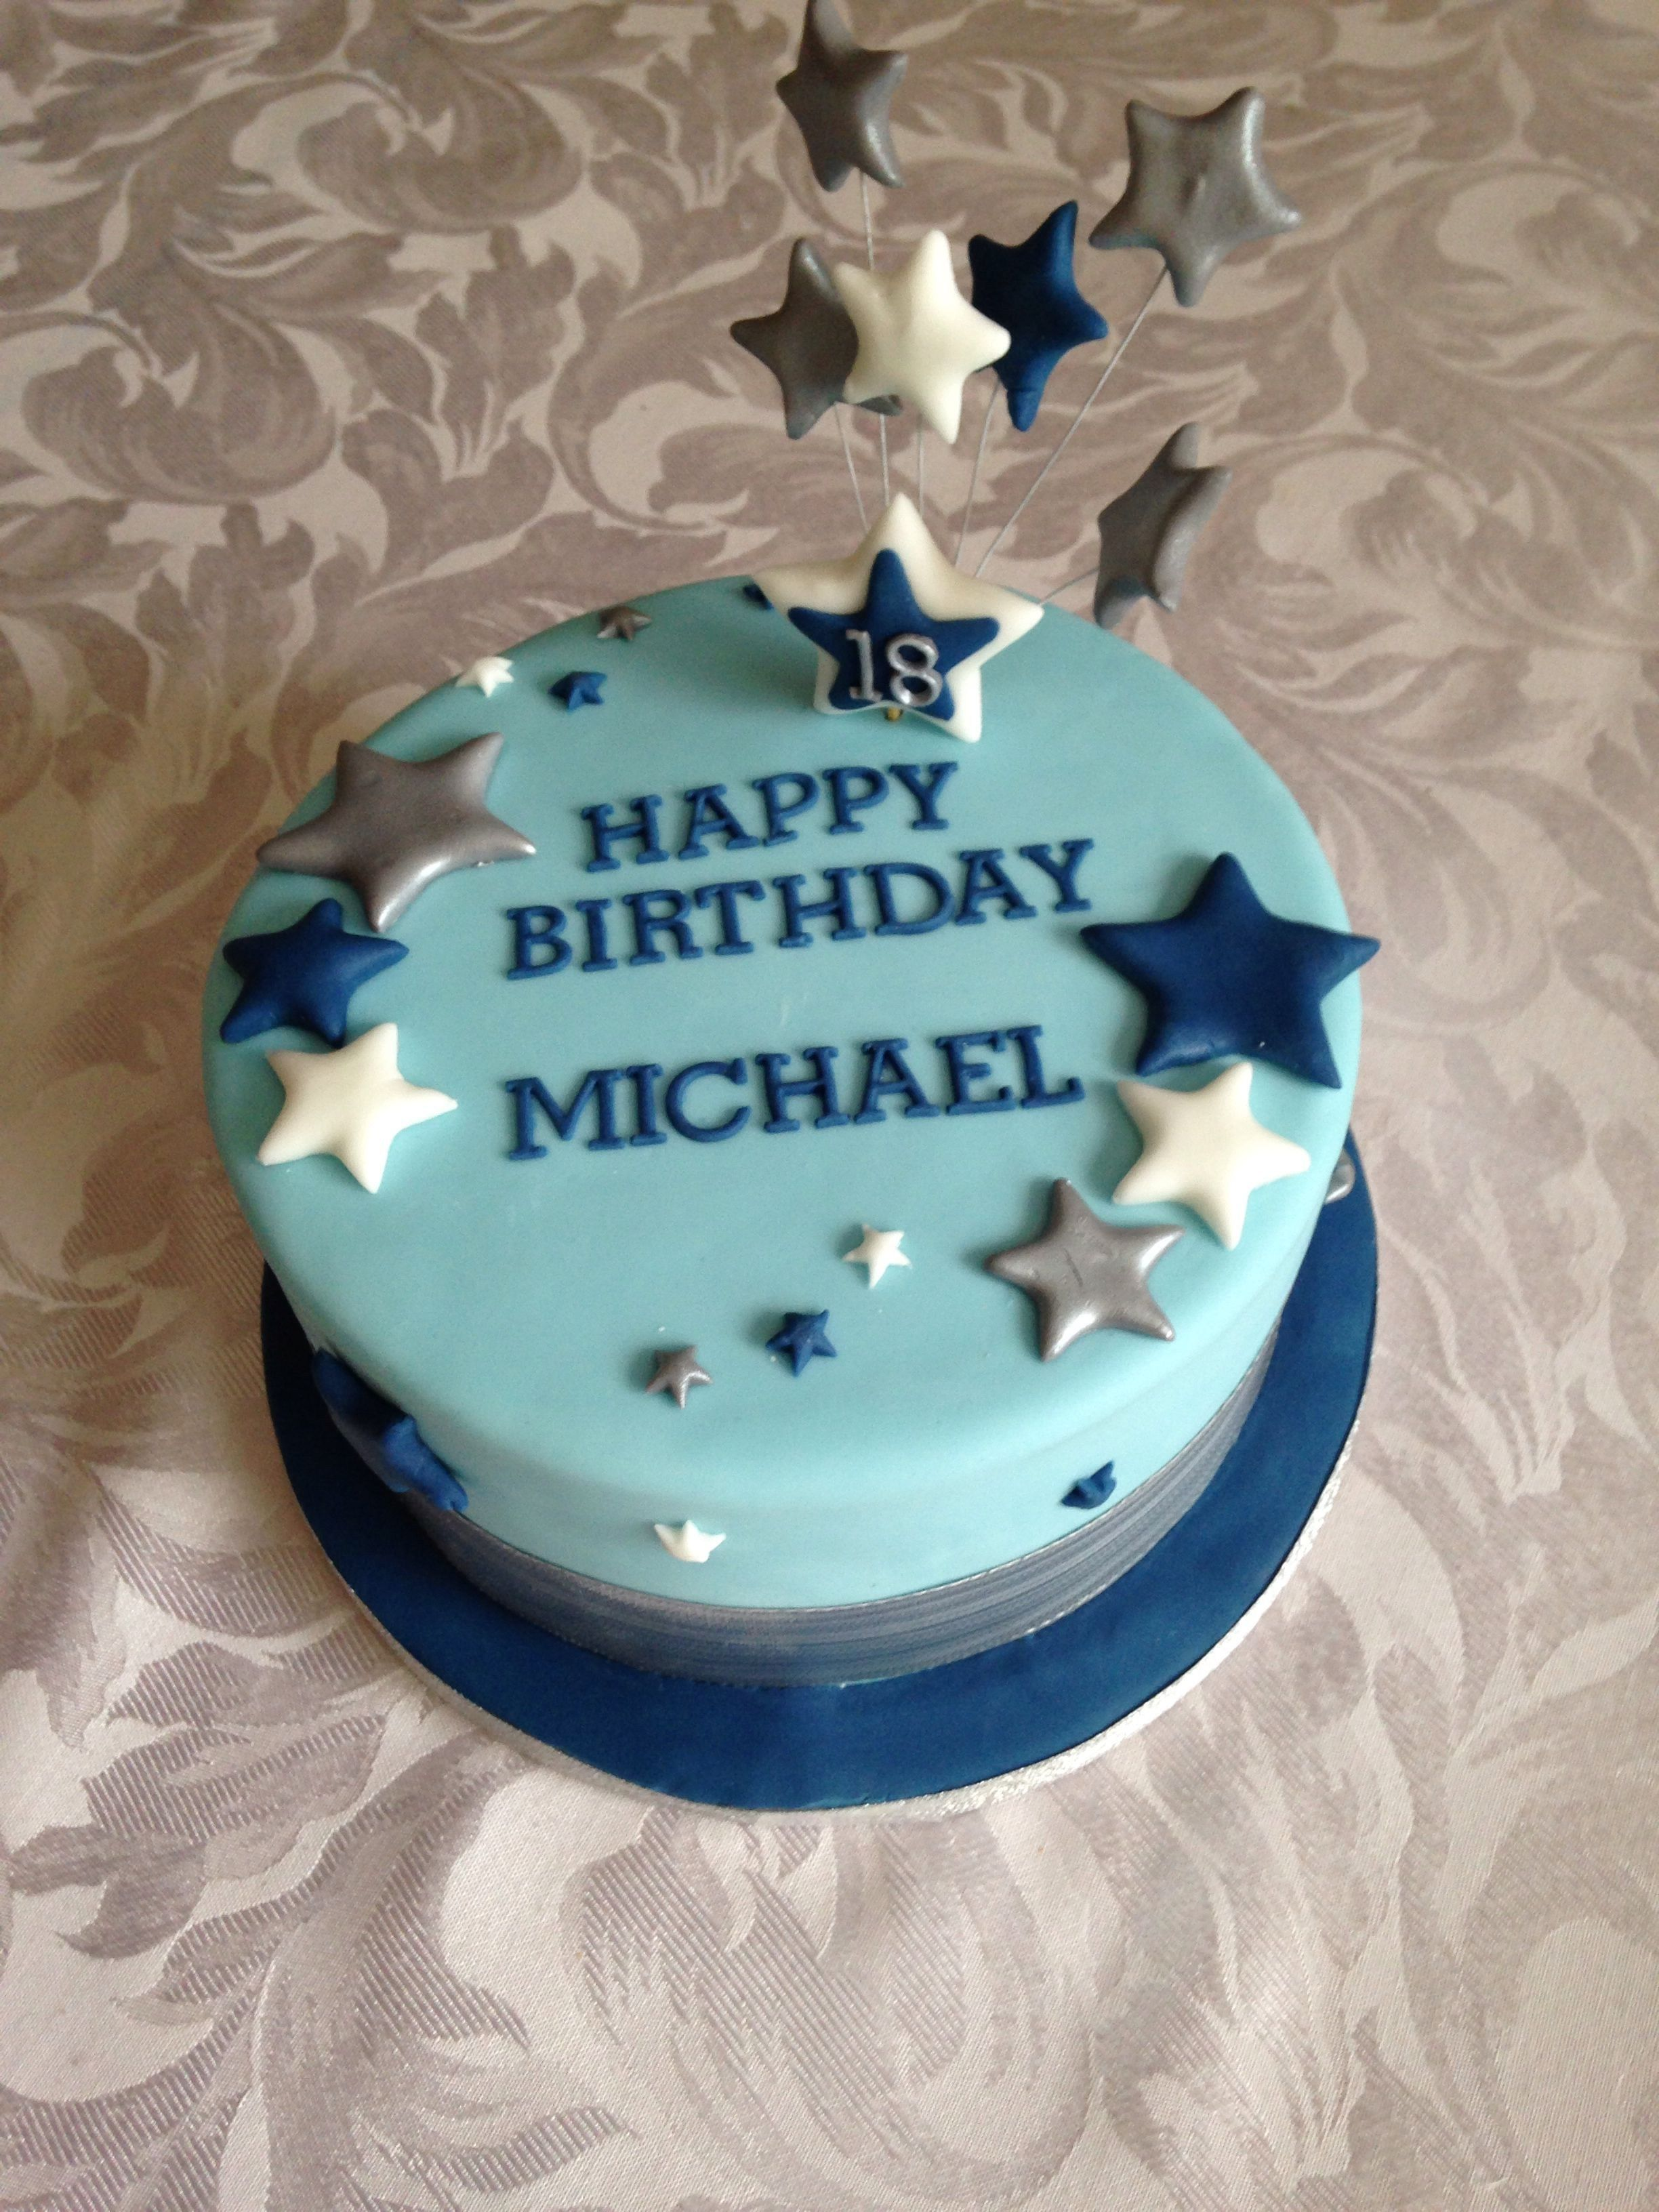 30 Awesome Photo Of Simple Birthday Cakes With Images